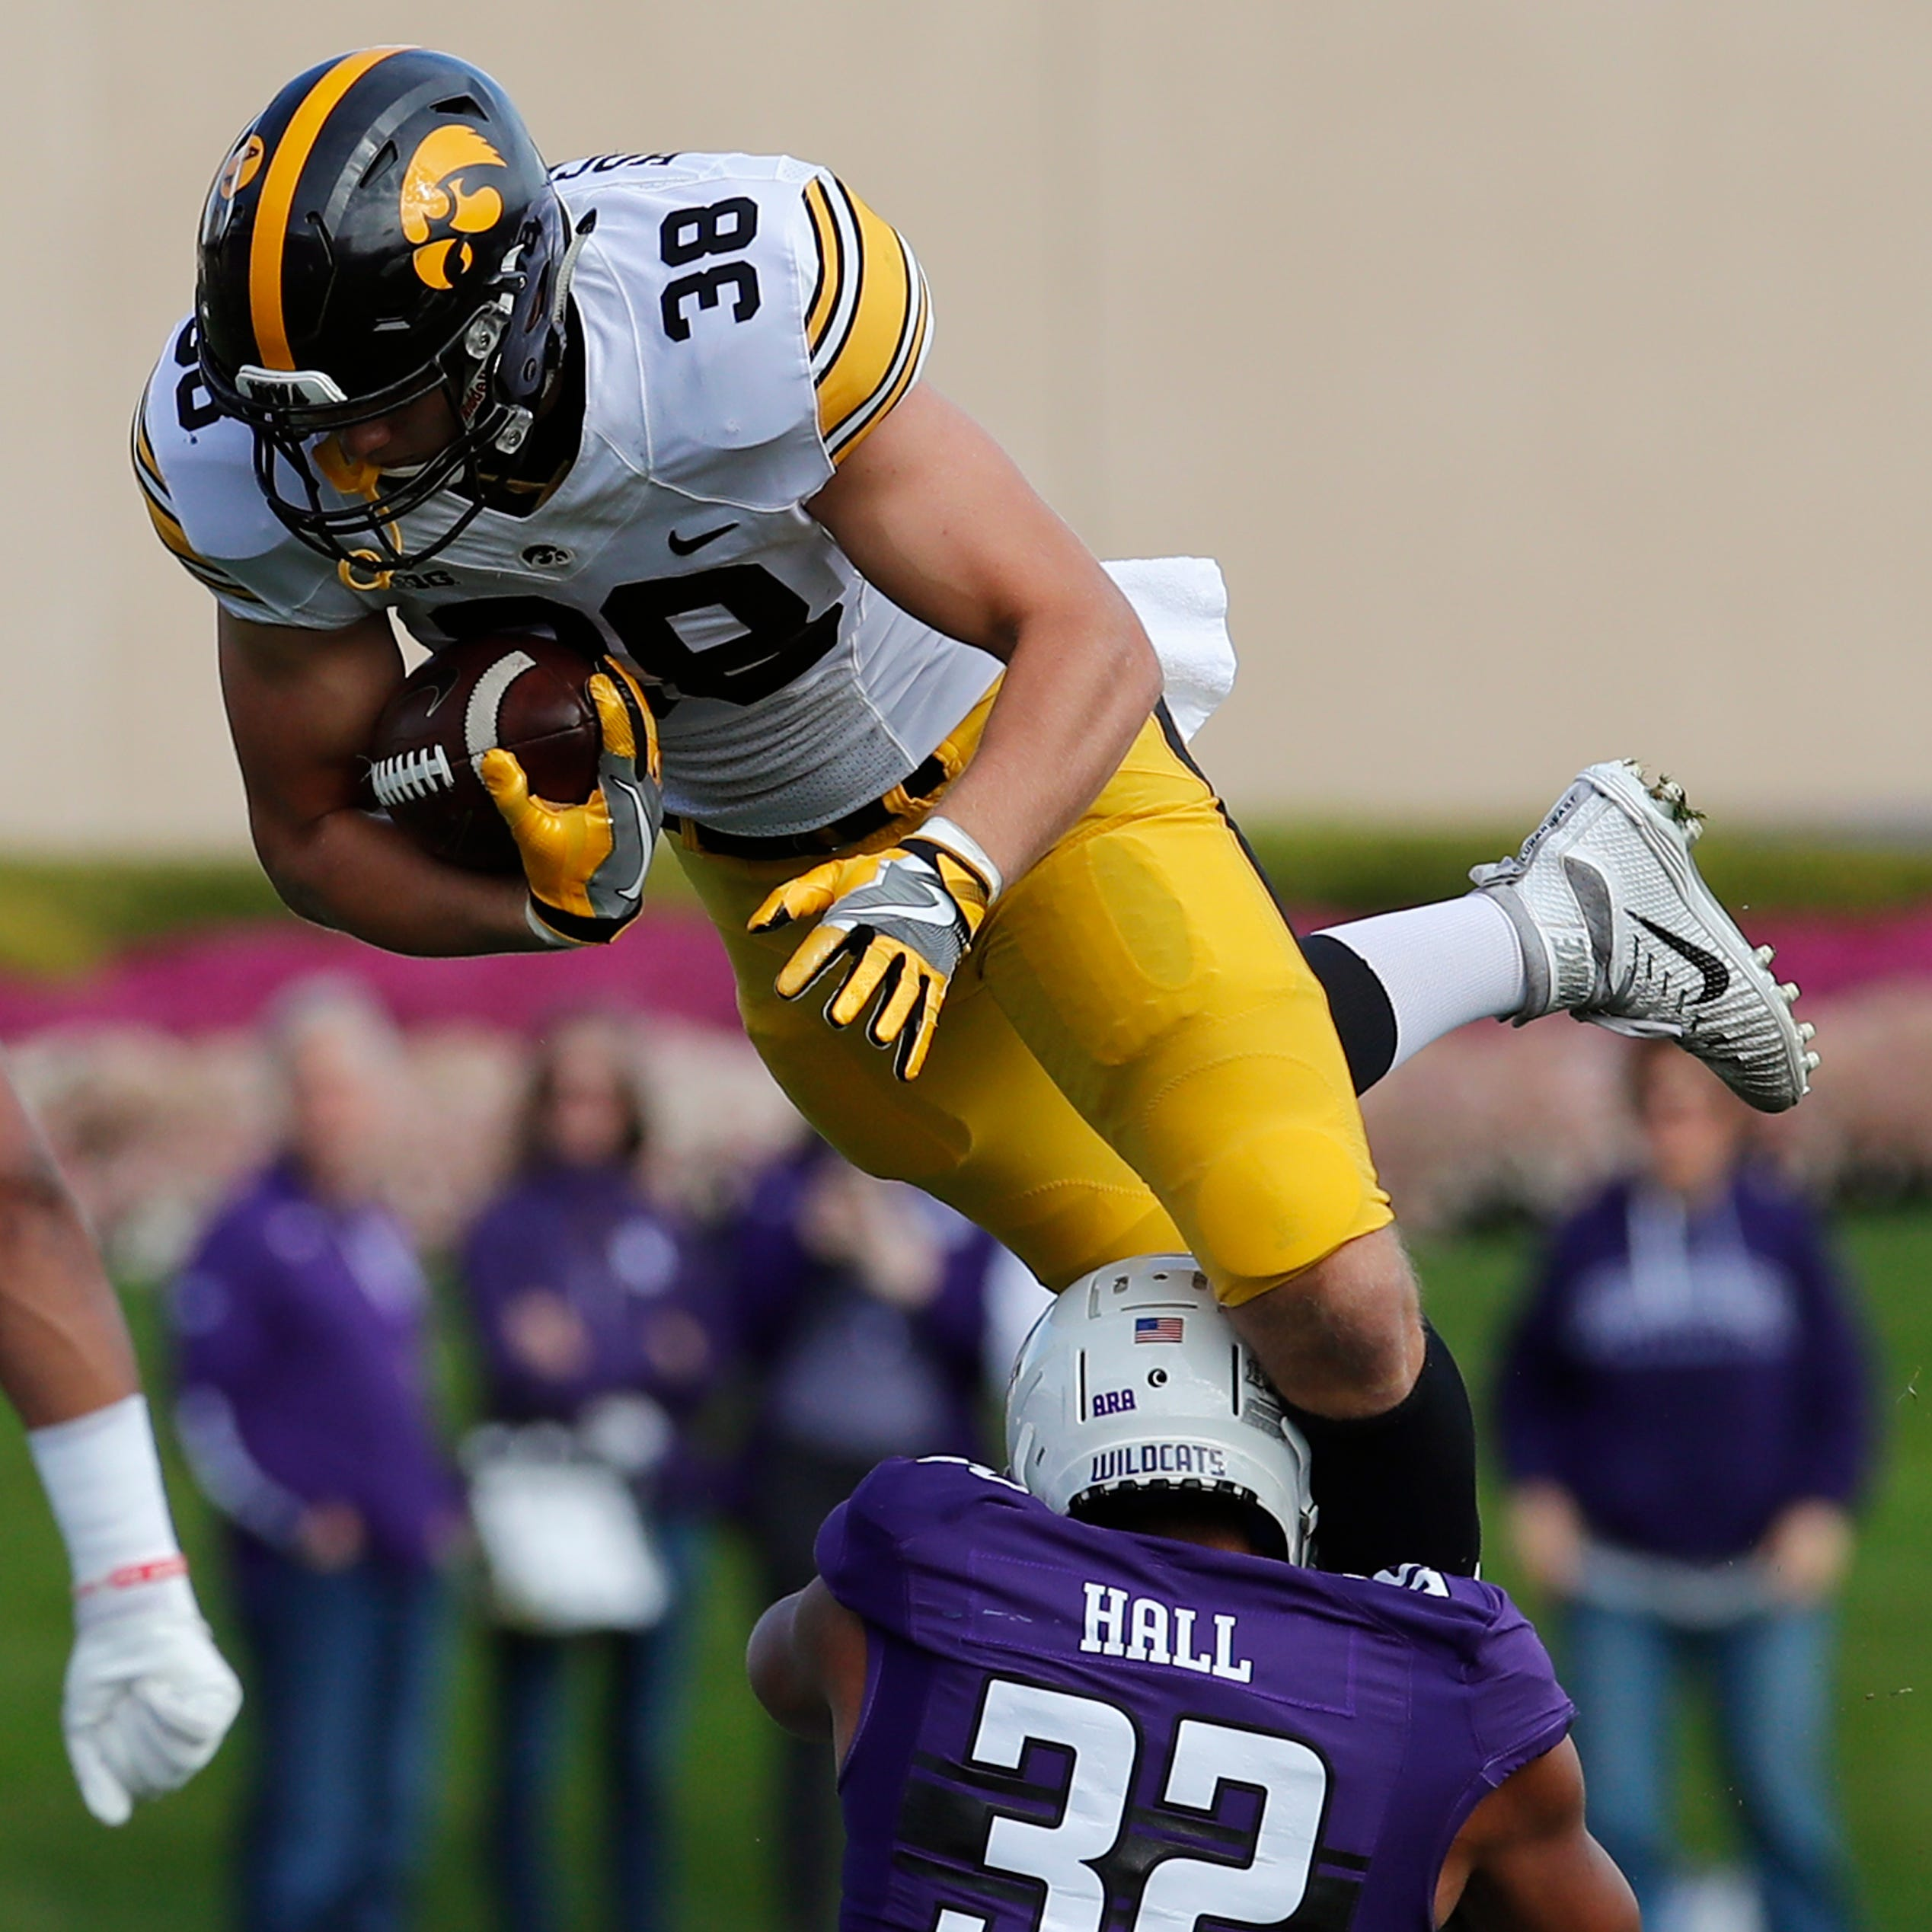 What must Lions tight end T.J. Hockenson become to justify top-10 draft pick?